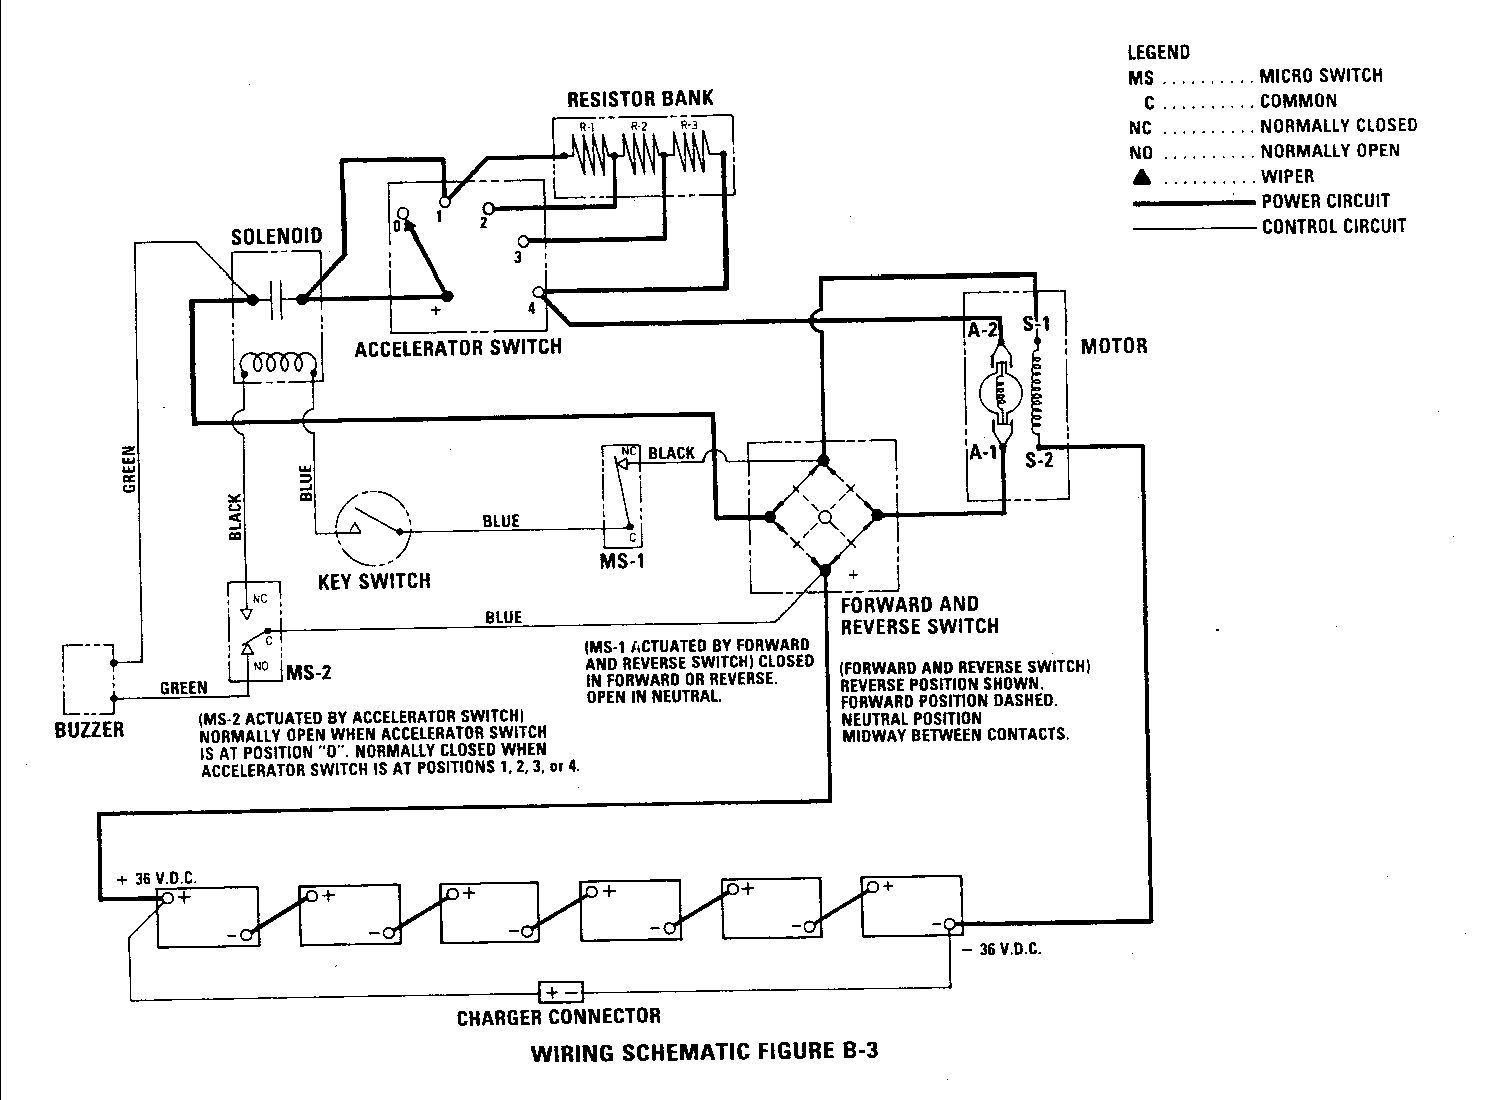 club cart wiring diagram 2000 ford f250 legend get free image about